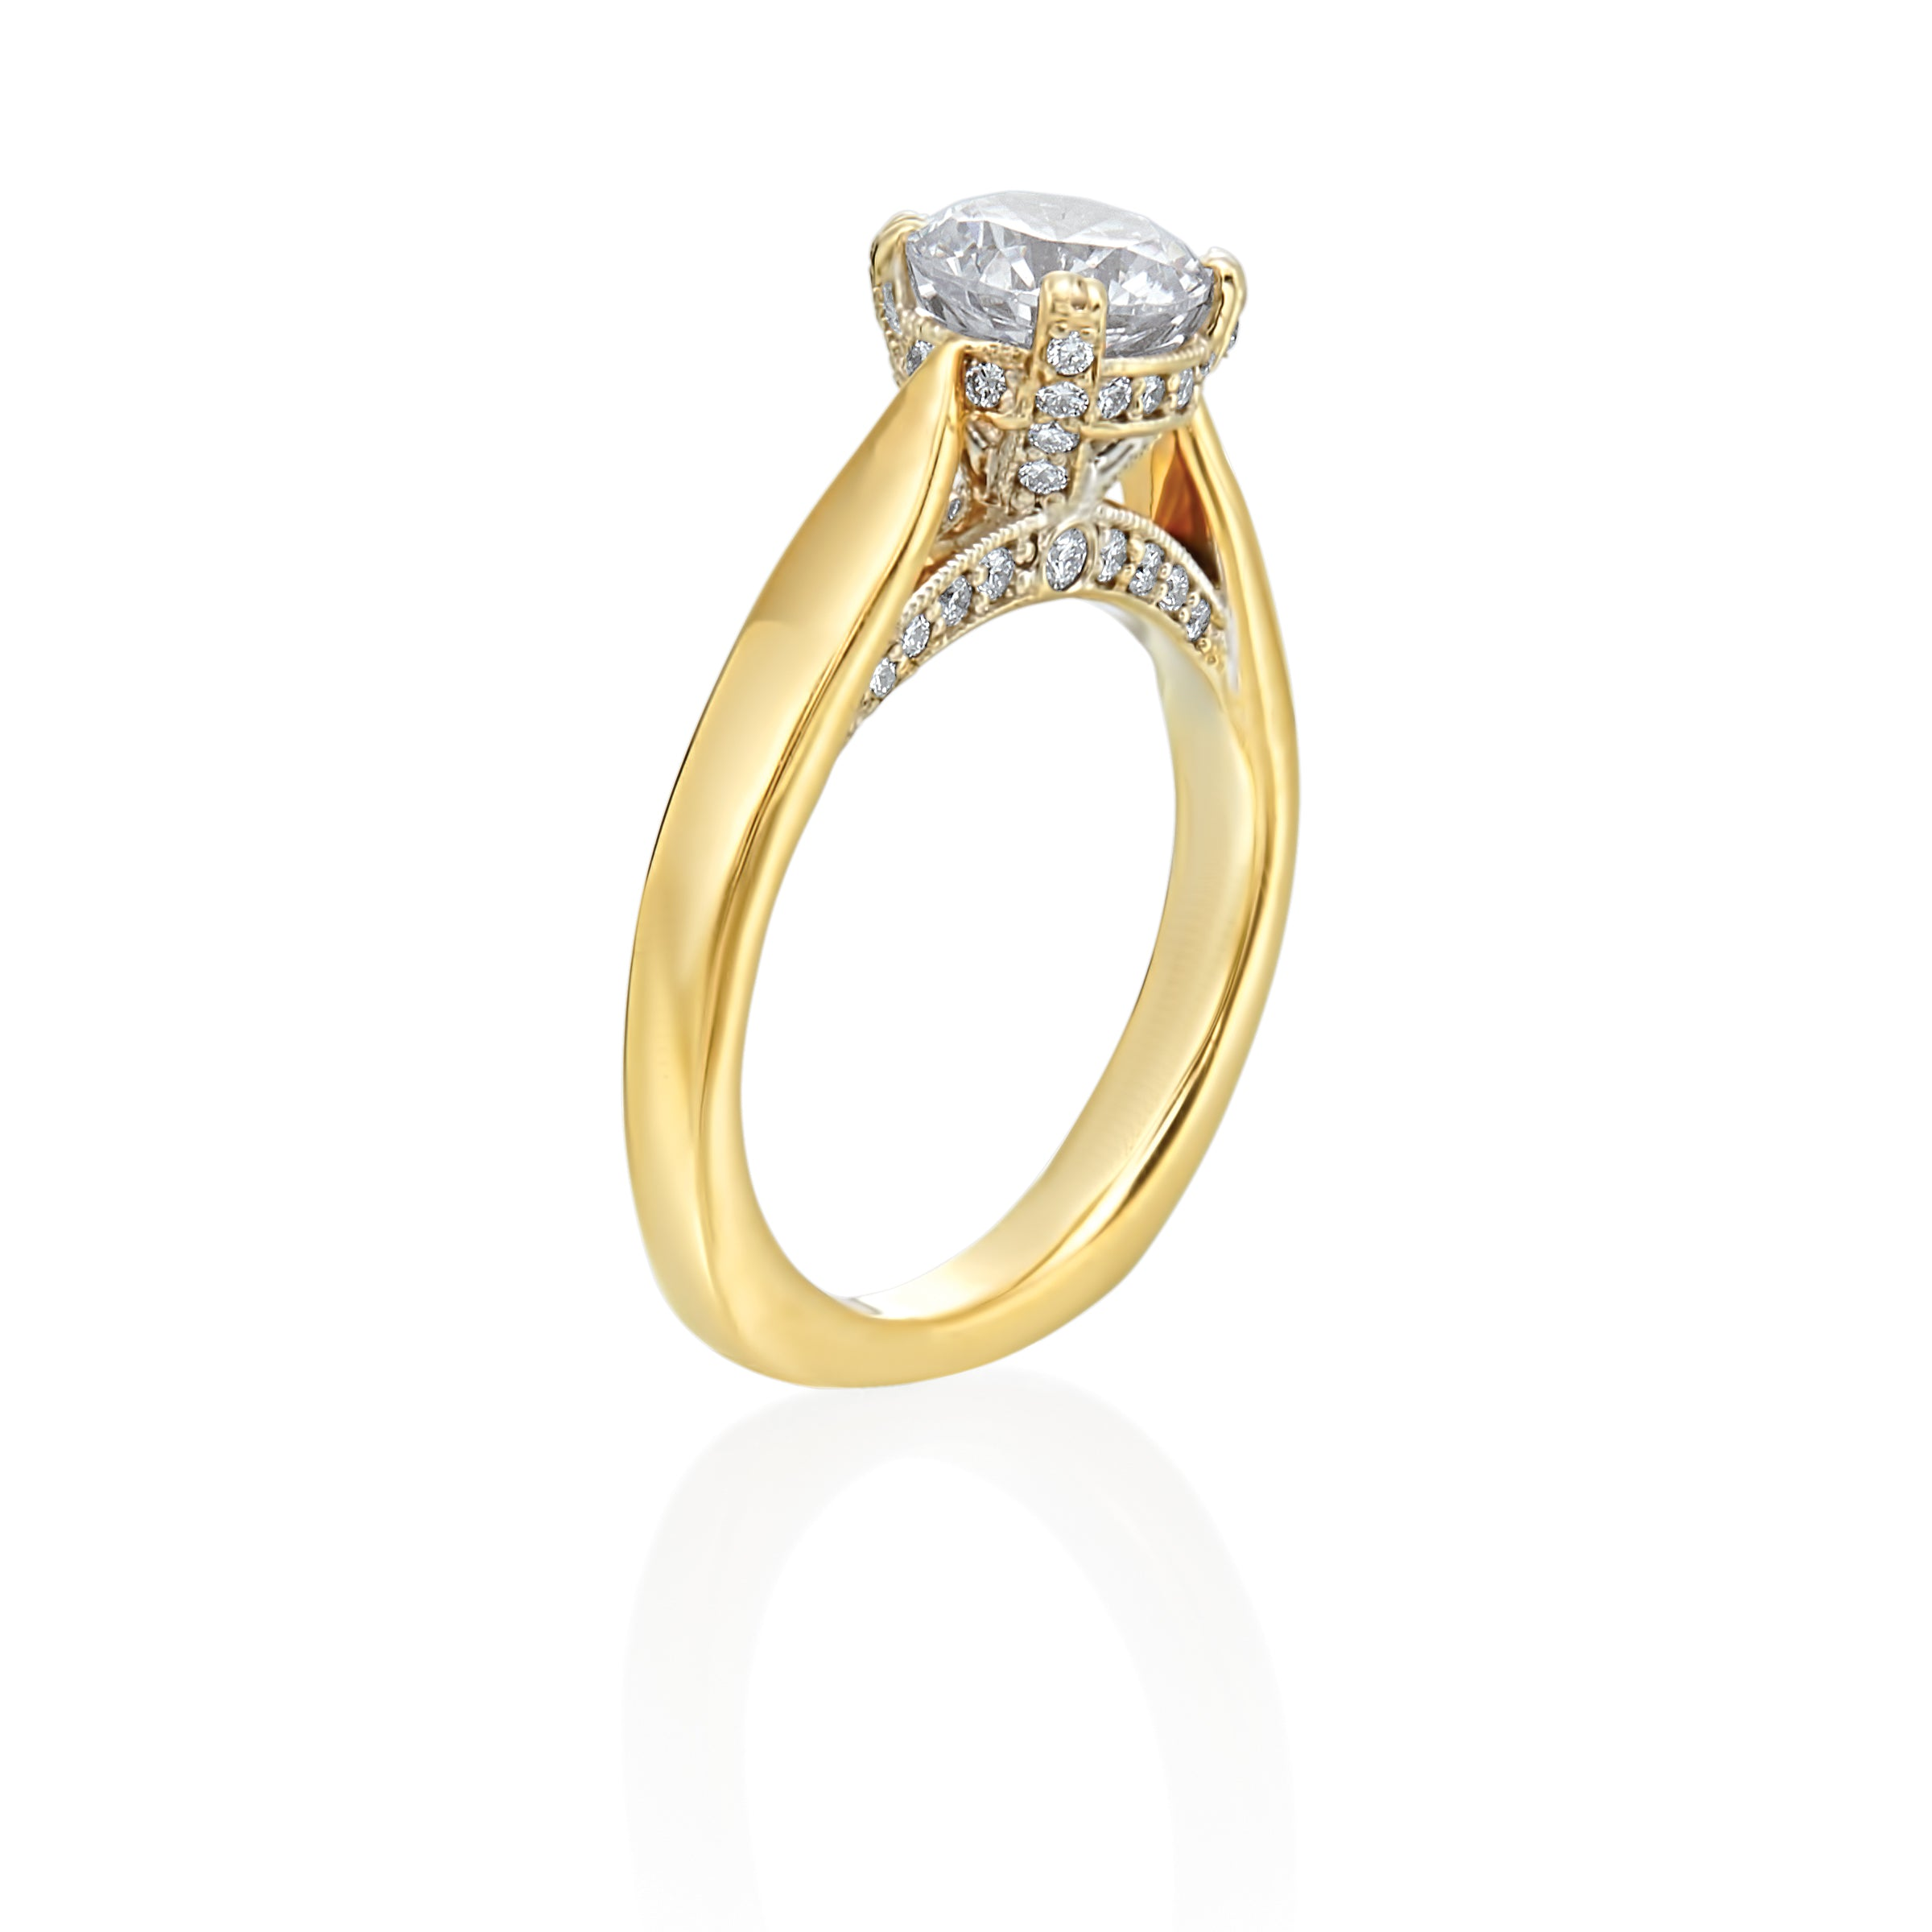 18K Yellow Gold Classic Double-Prong Solitaire Engagement Ring